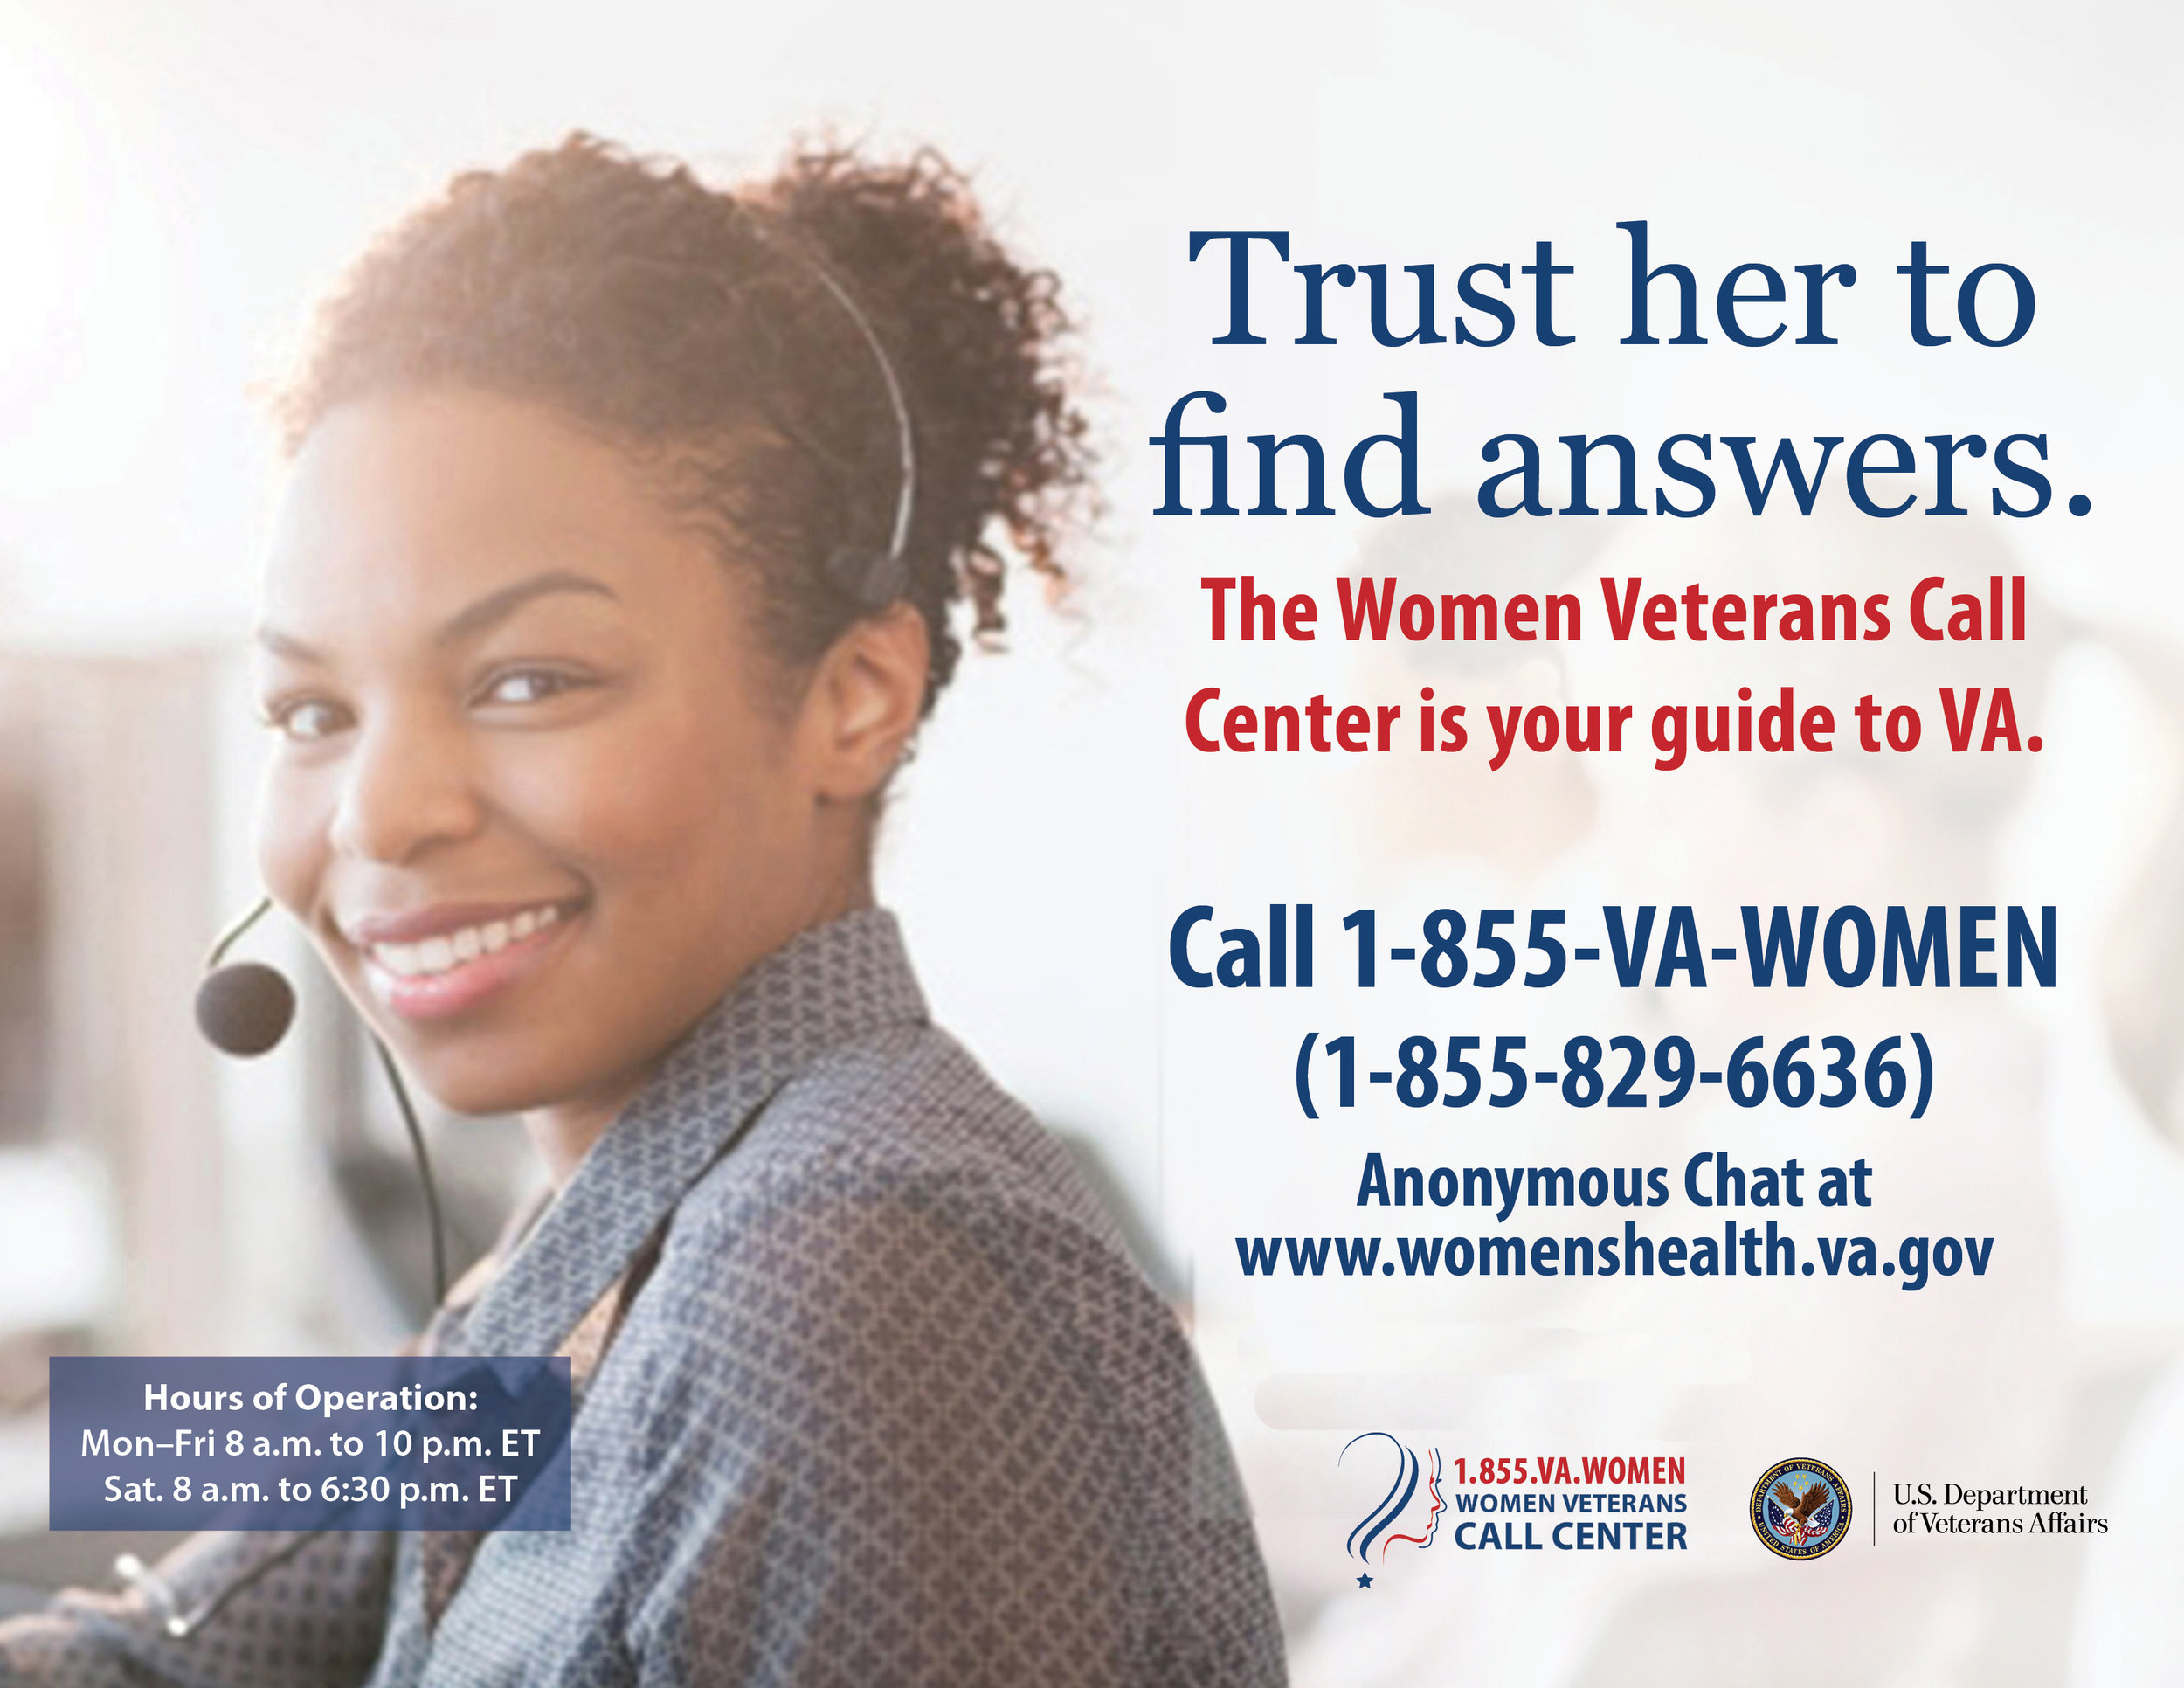 Women Veterans Call Center (WVCC)   Simply call 1-855-VA-Women (1-855-829-6636) to be connected with a Women Veterans Call Center representative. Hours of operation are Monday through Friday 8:00 a.m. to 10:00 p.m. ET and Saturday, 8:00 a.m. to 6:30 p.m. ET.